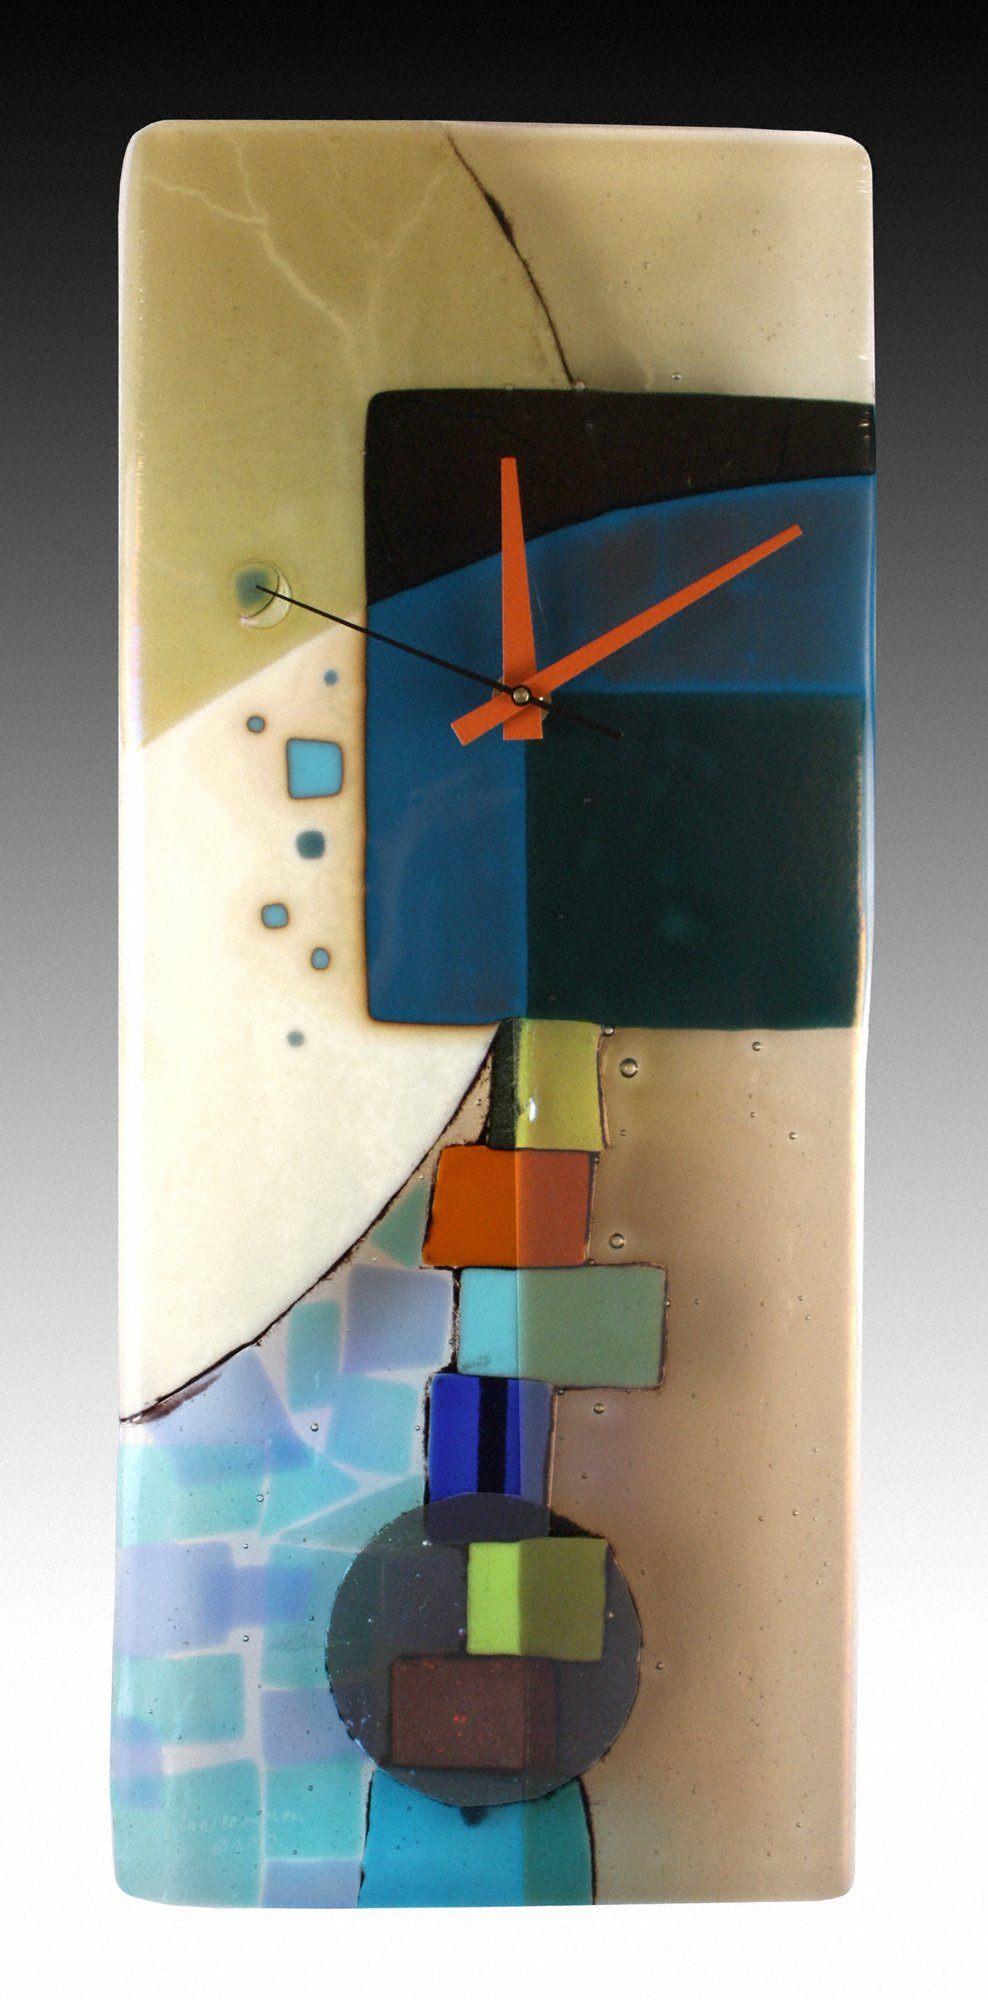 Andrea Fused Glass Pendulum Clock